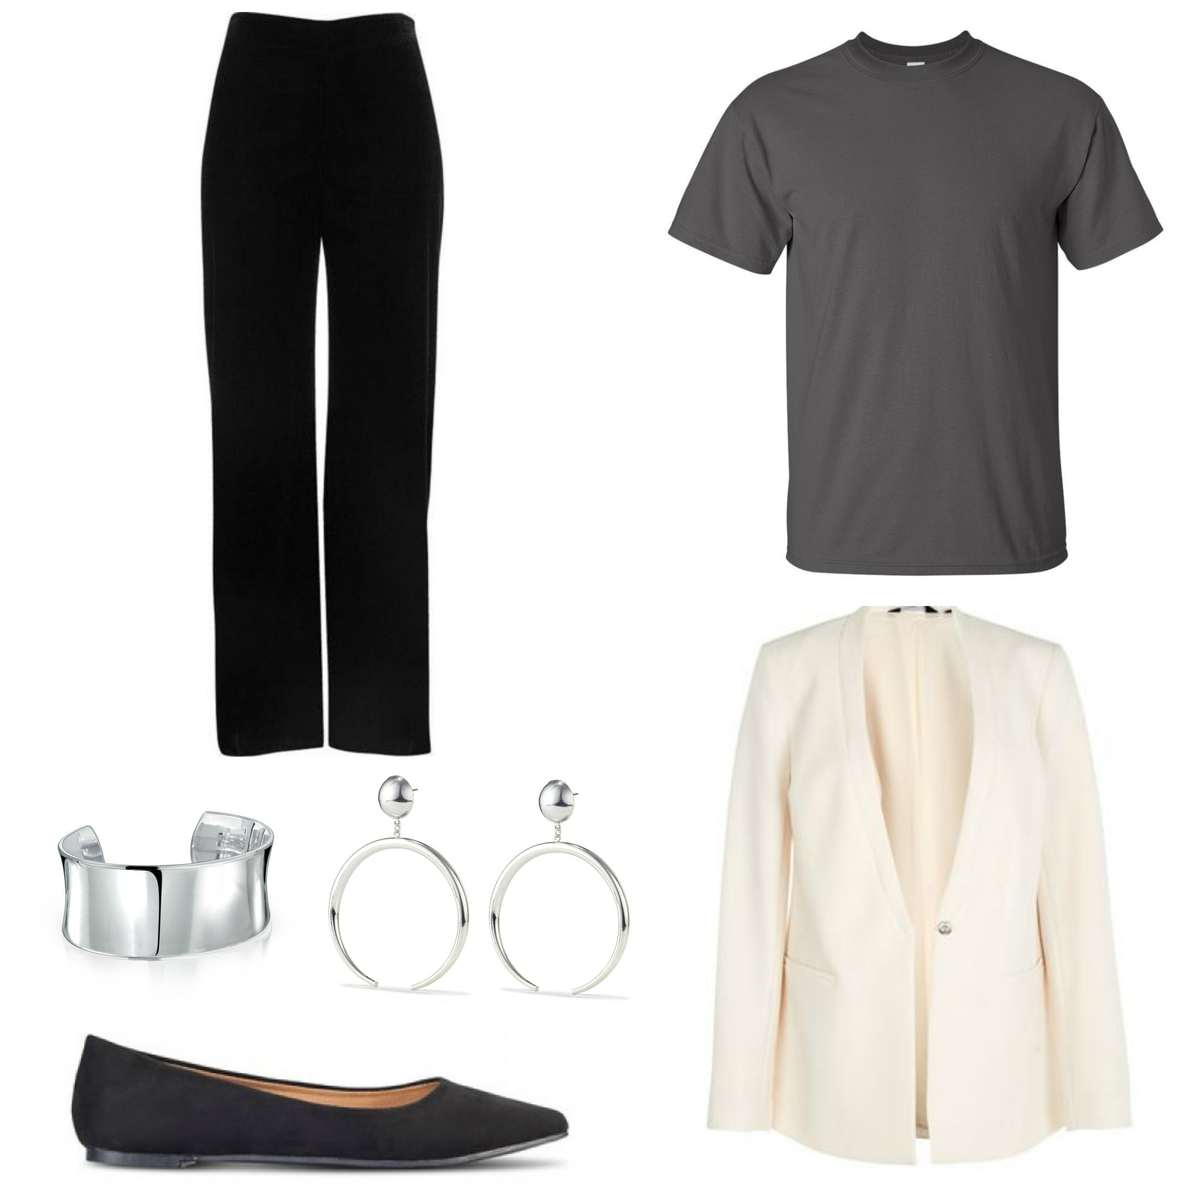 Image is of an outfit featuring a cream blazer, gray t-shirt, black pants, a silver cuff and statement earrings and black pointed toe flats.